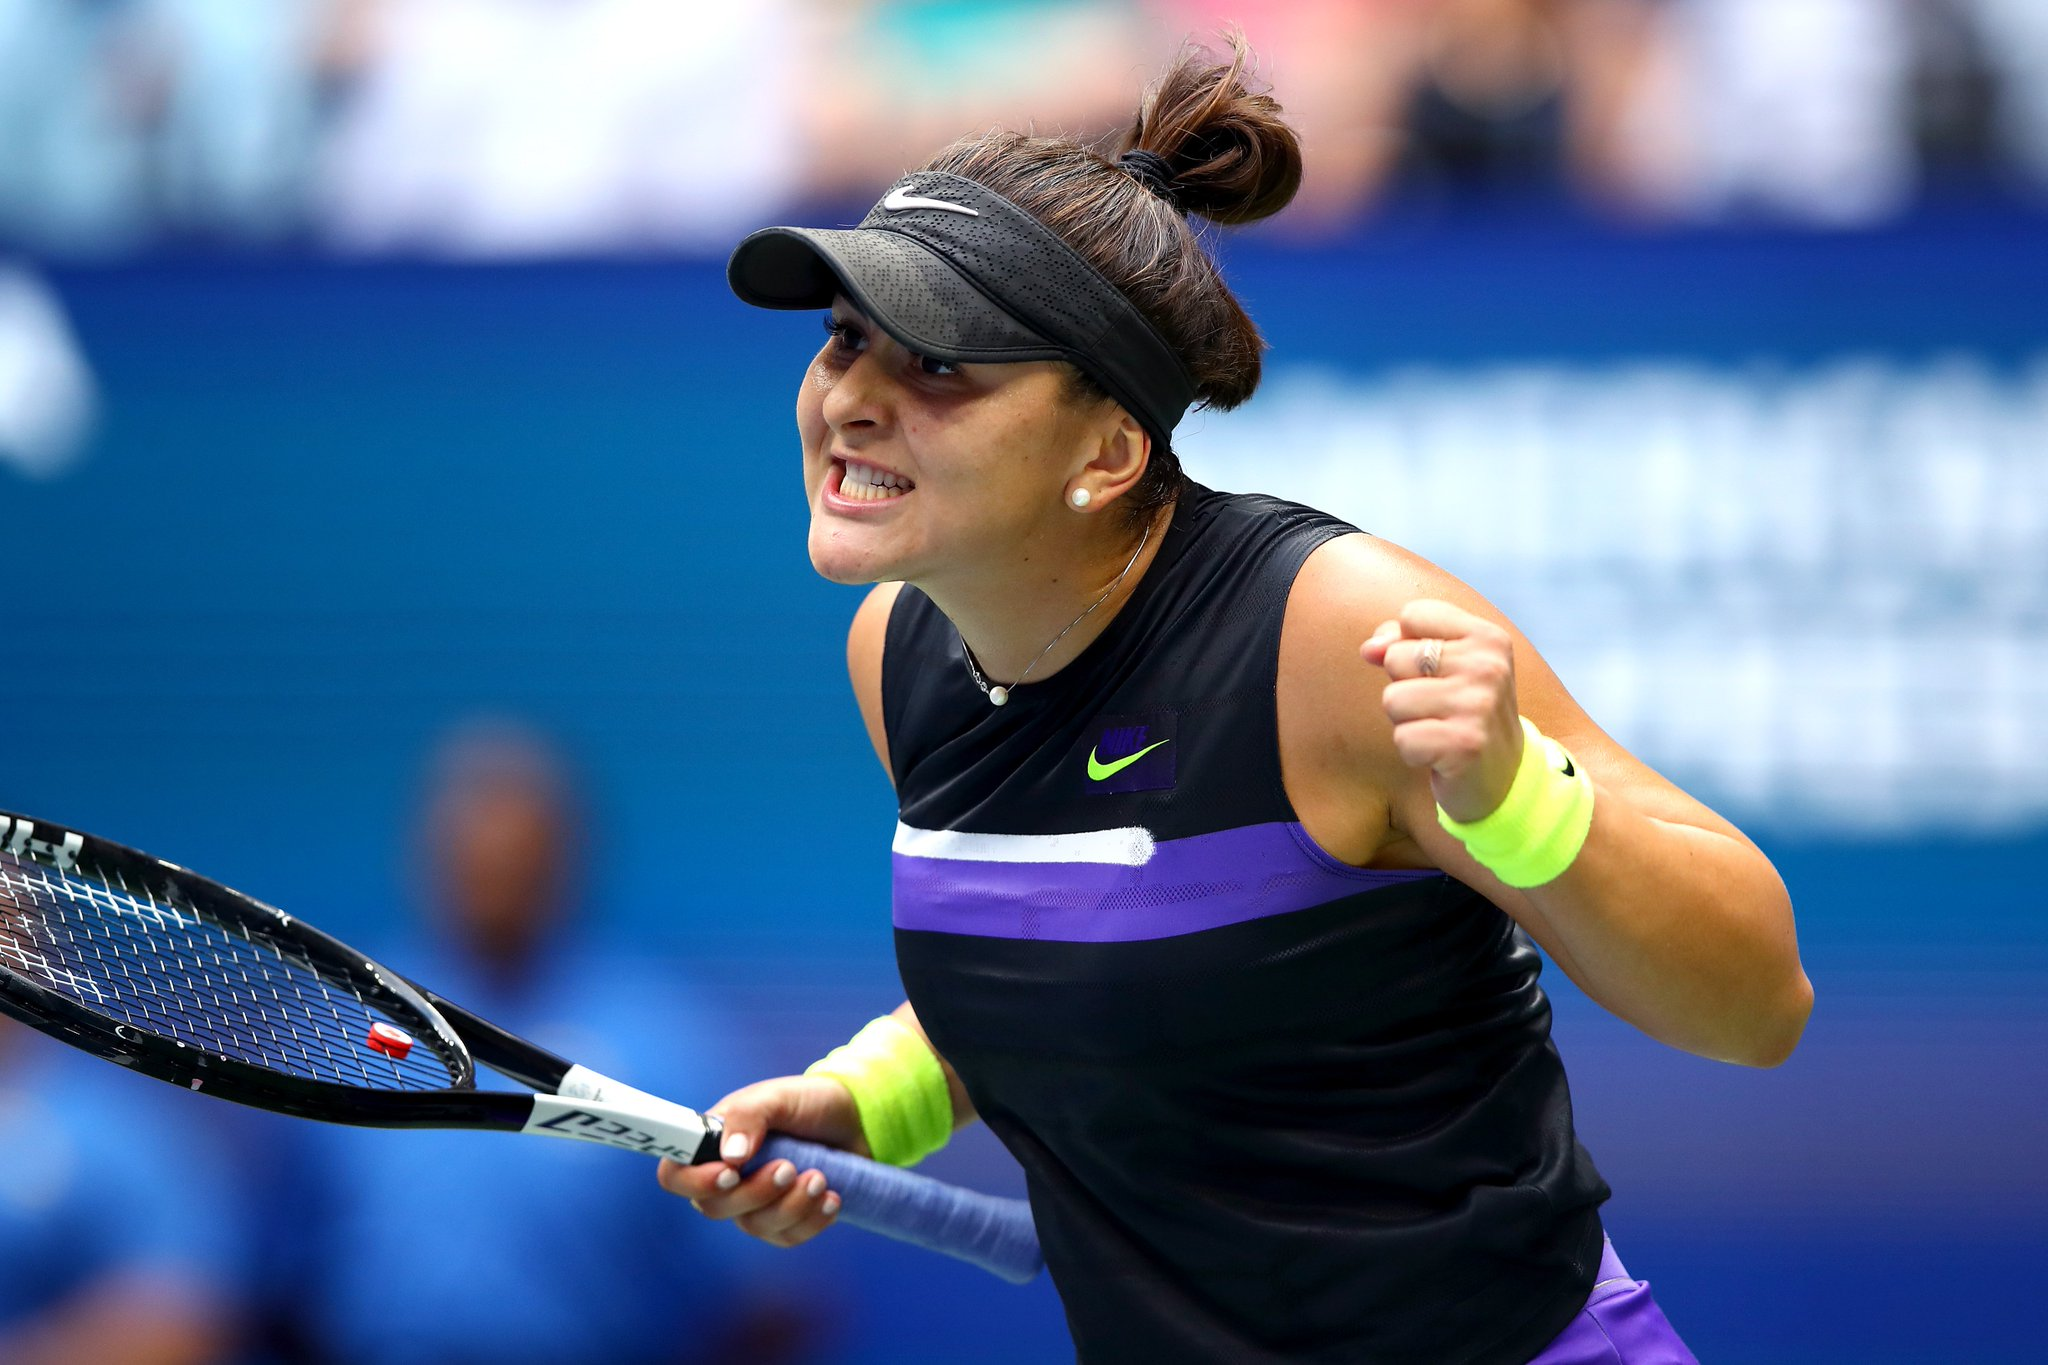 🎾 UPSET 🎾   No. 15 Bianca Andreescu upsets No. 8 Serena to win the #USOpen https://t.co/m9xlfELfvp